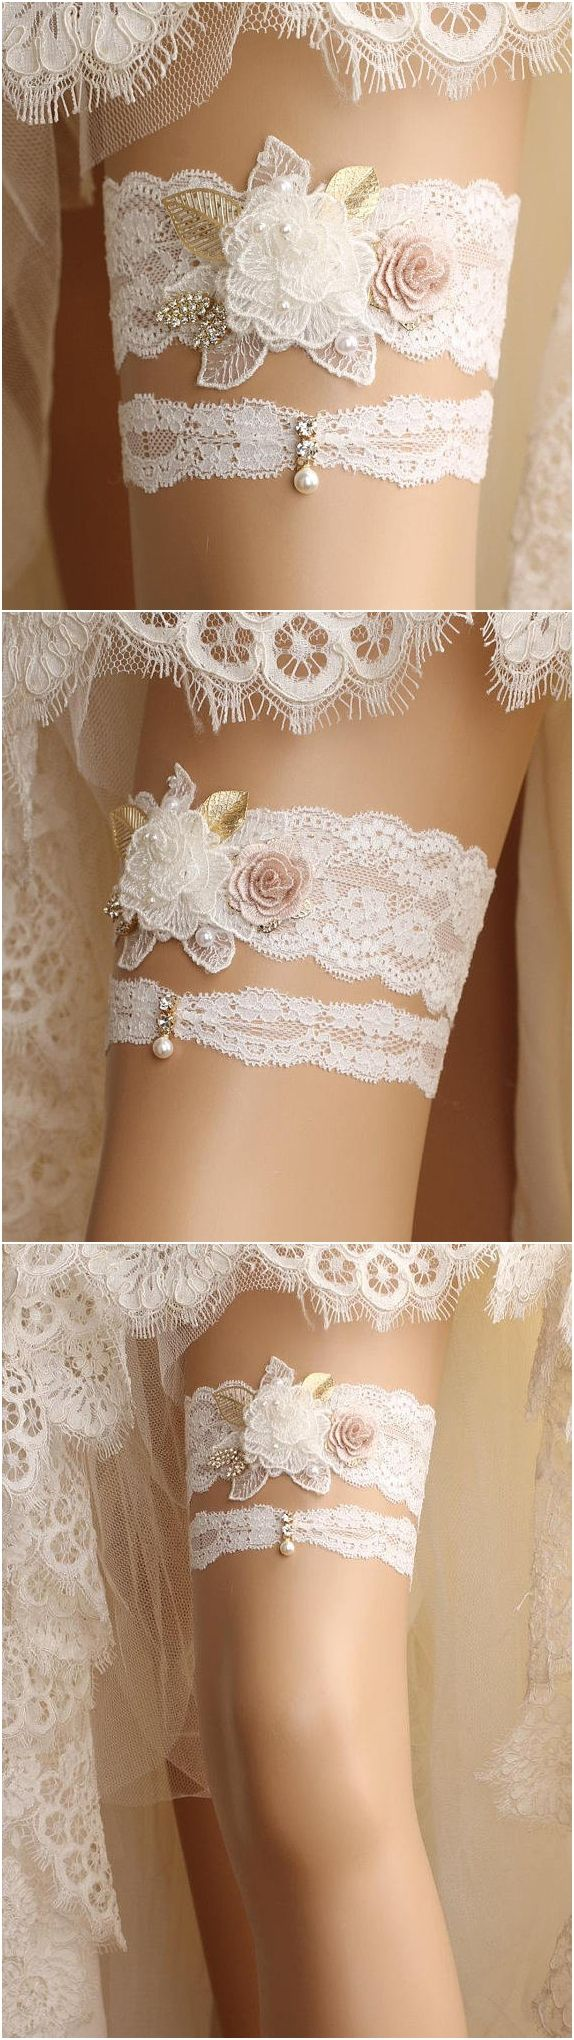 2026 best romantic weddings images on pinterest | beading and